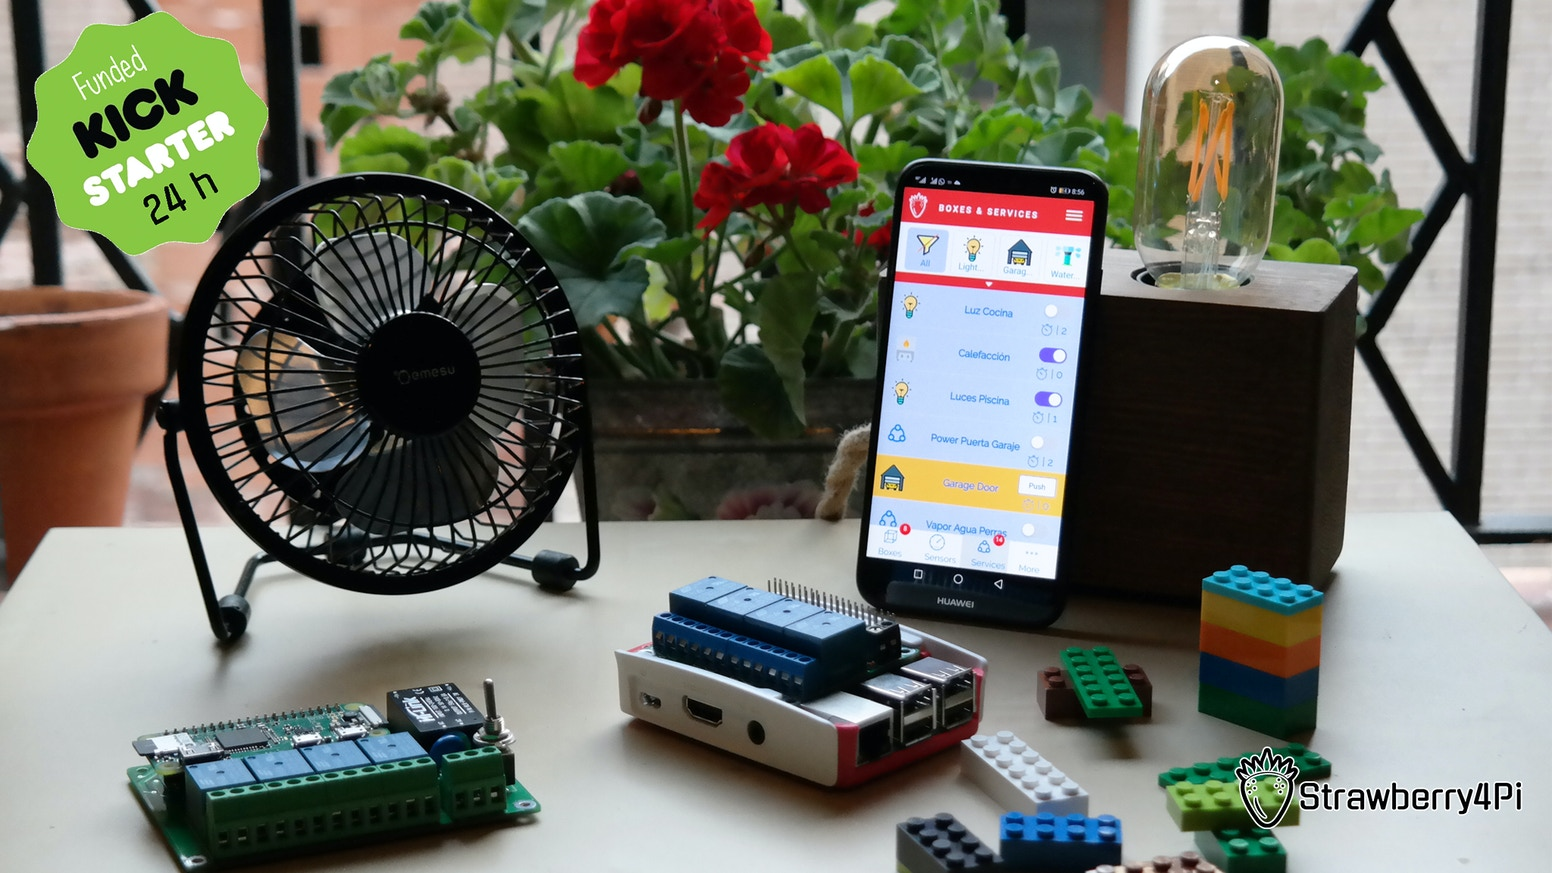 An IoT solution for Raspberry Pi. Plug S4Pi on your Raspberry Pi and control the projects from your Smartpohone in a few minutes.